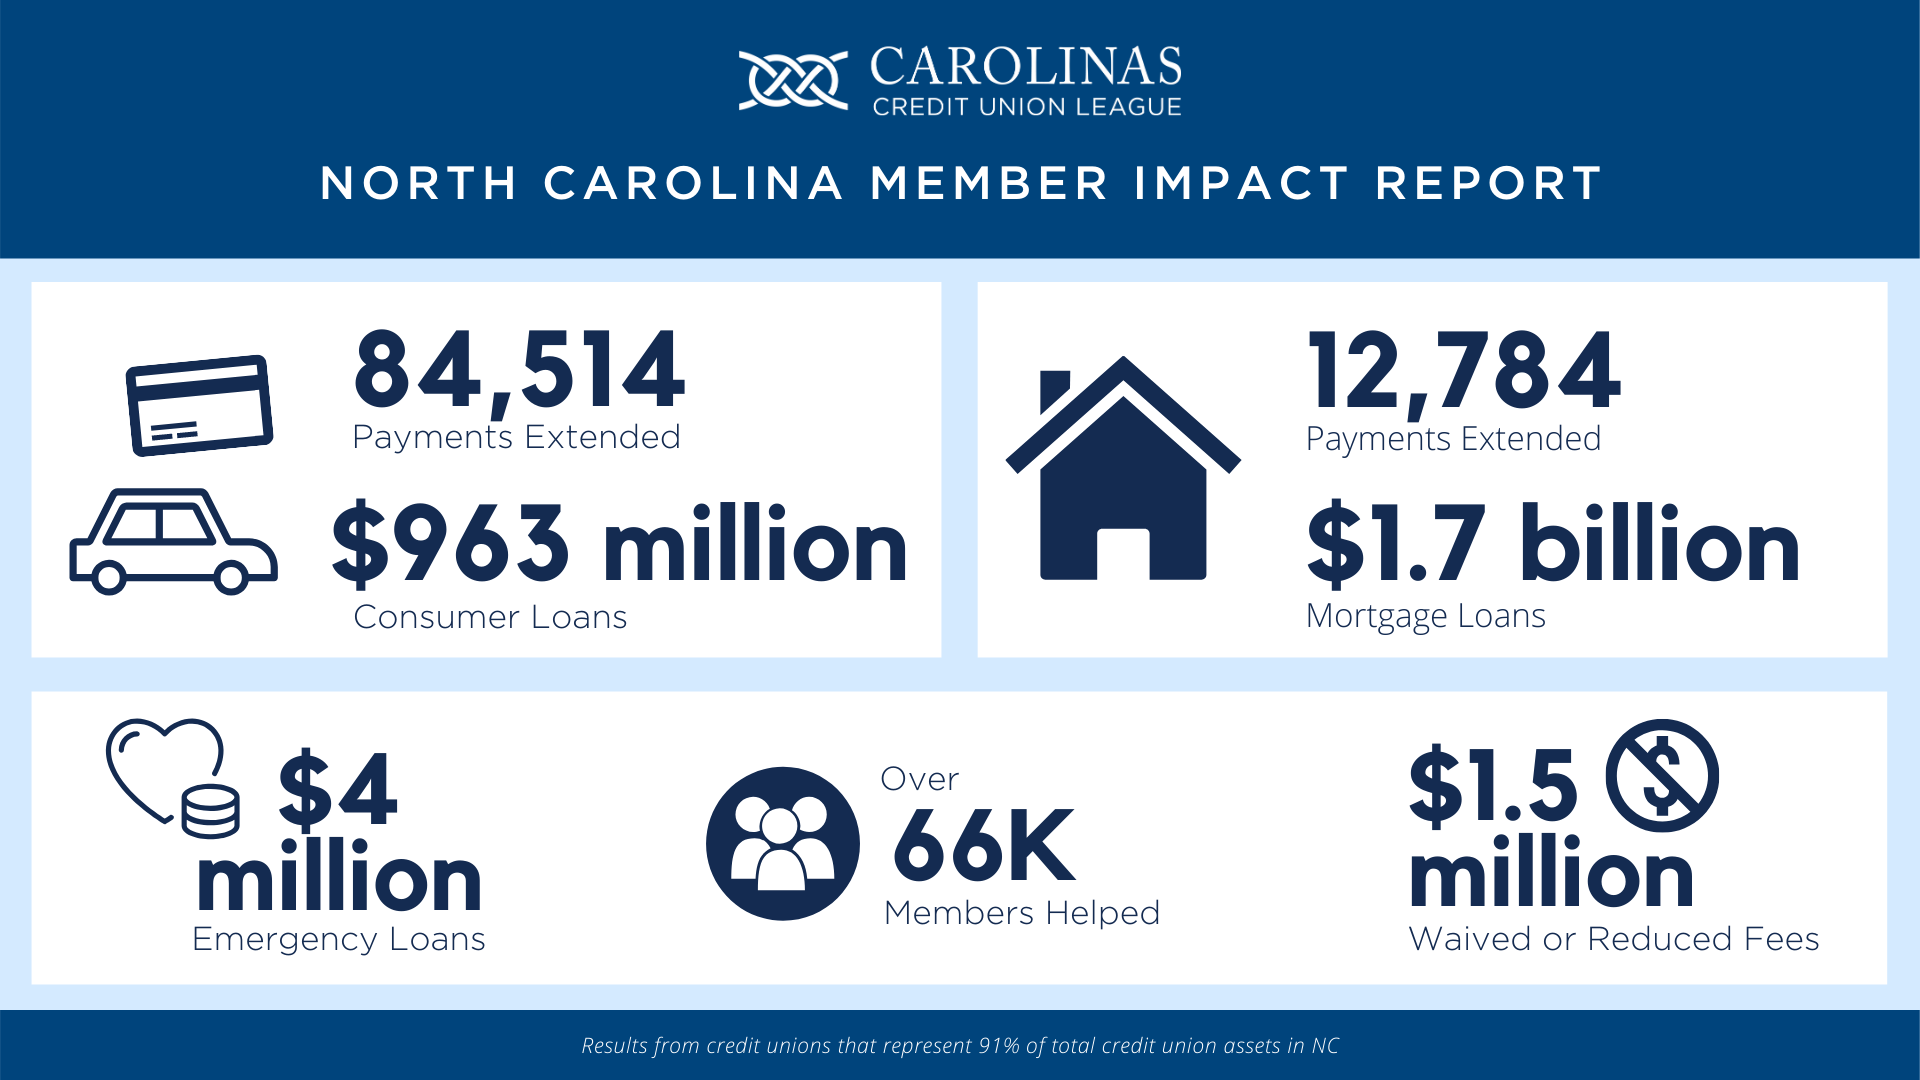 NC Member Impact Report Infographic